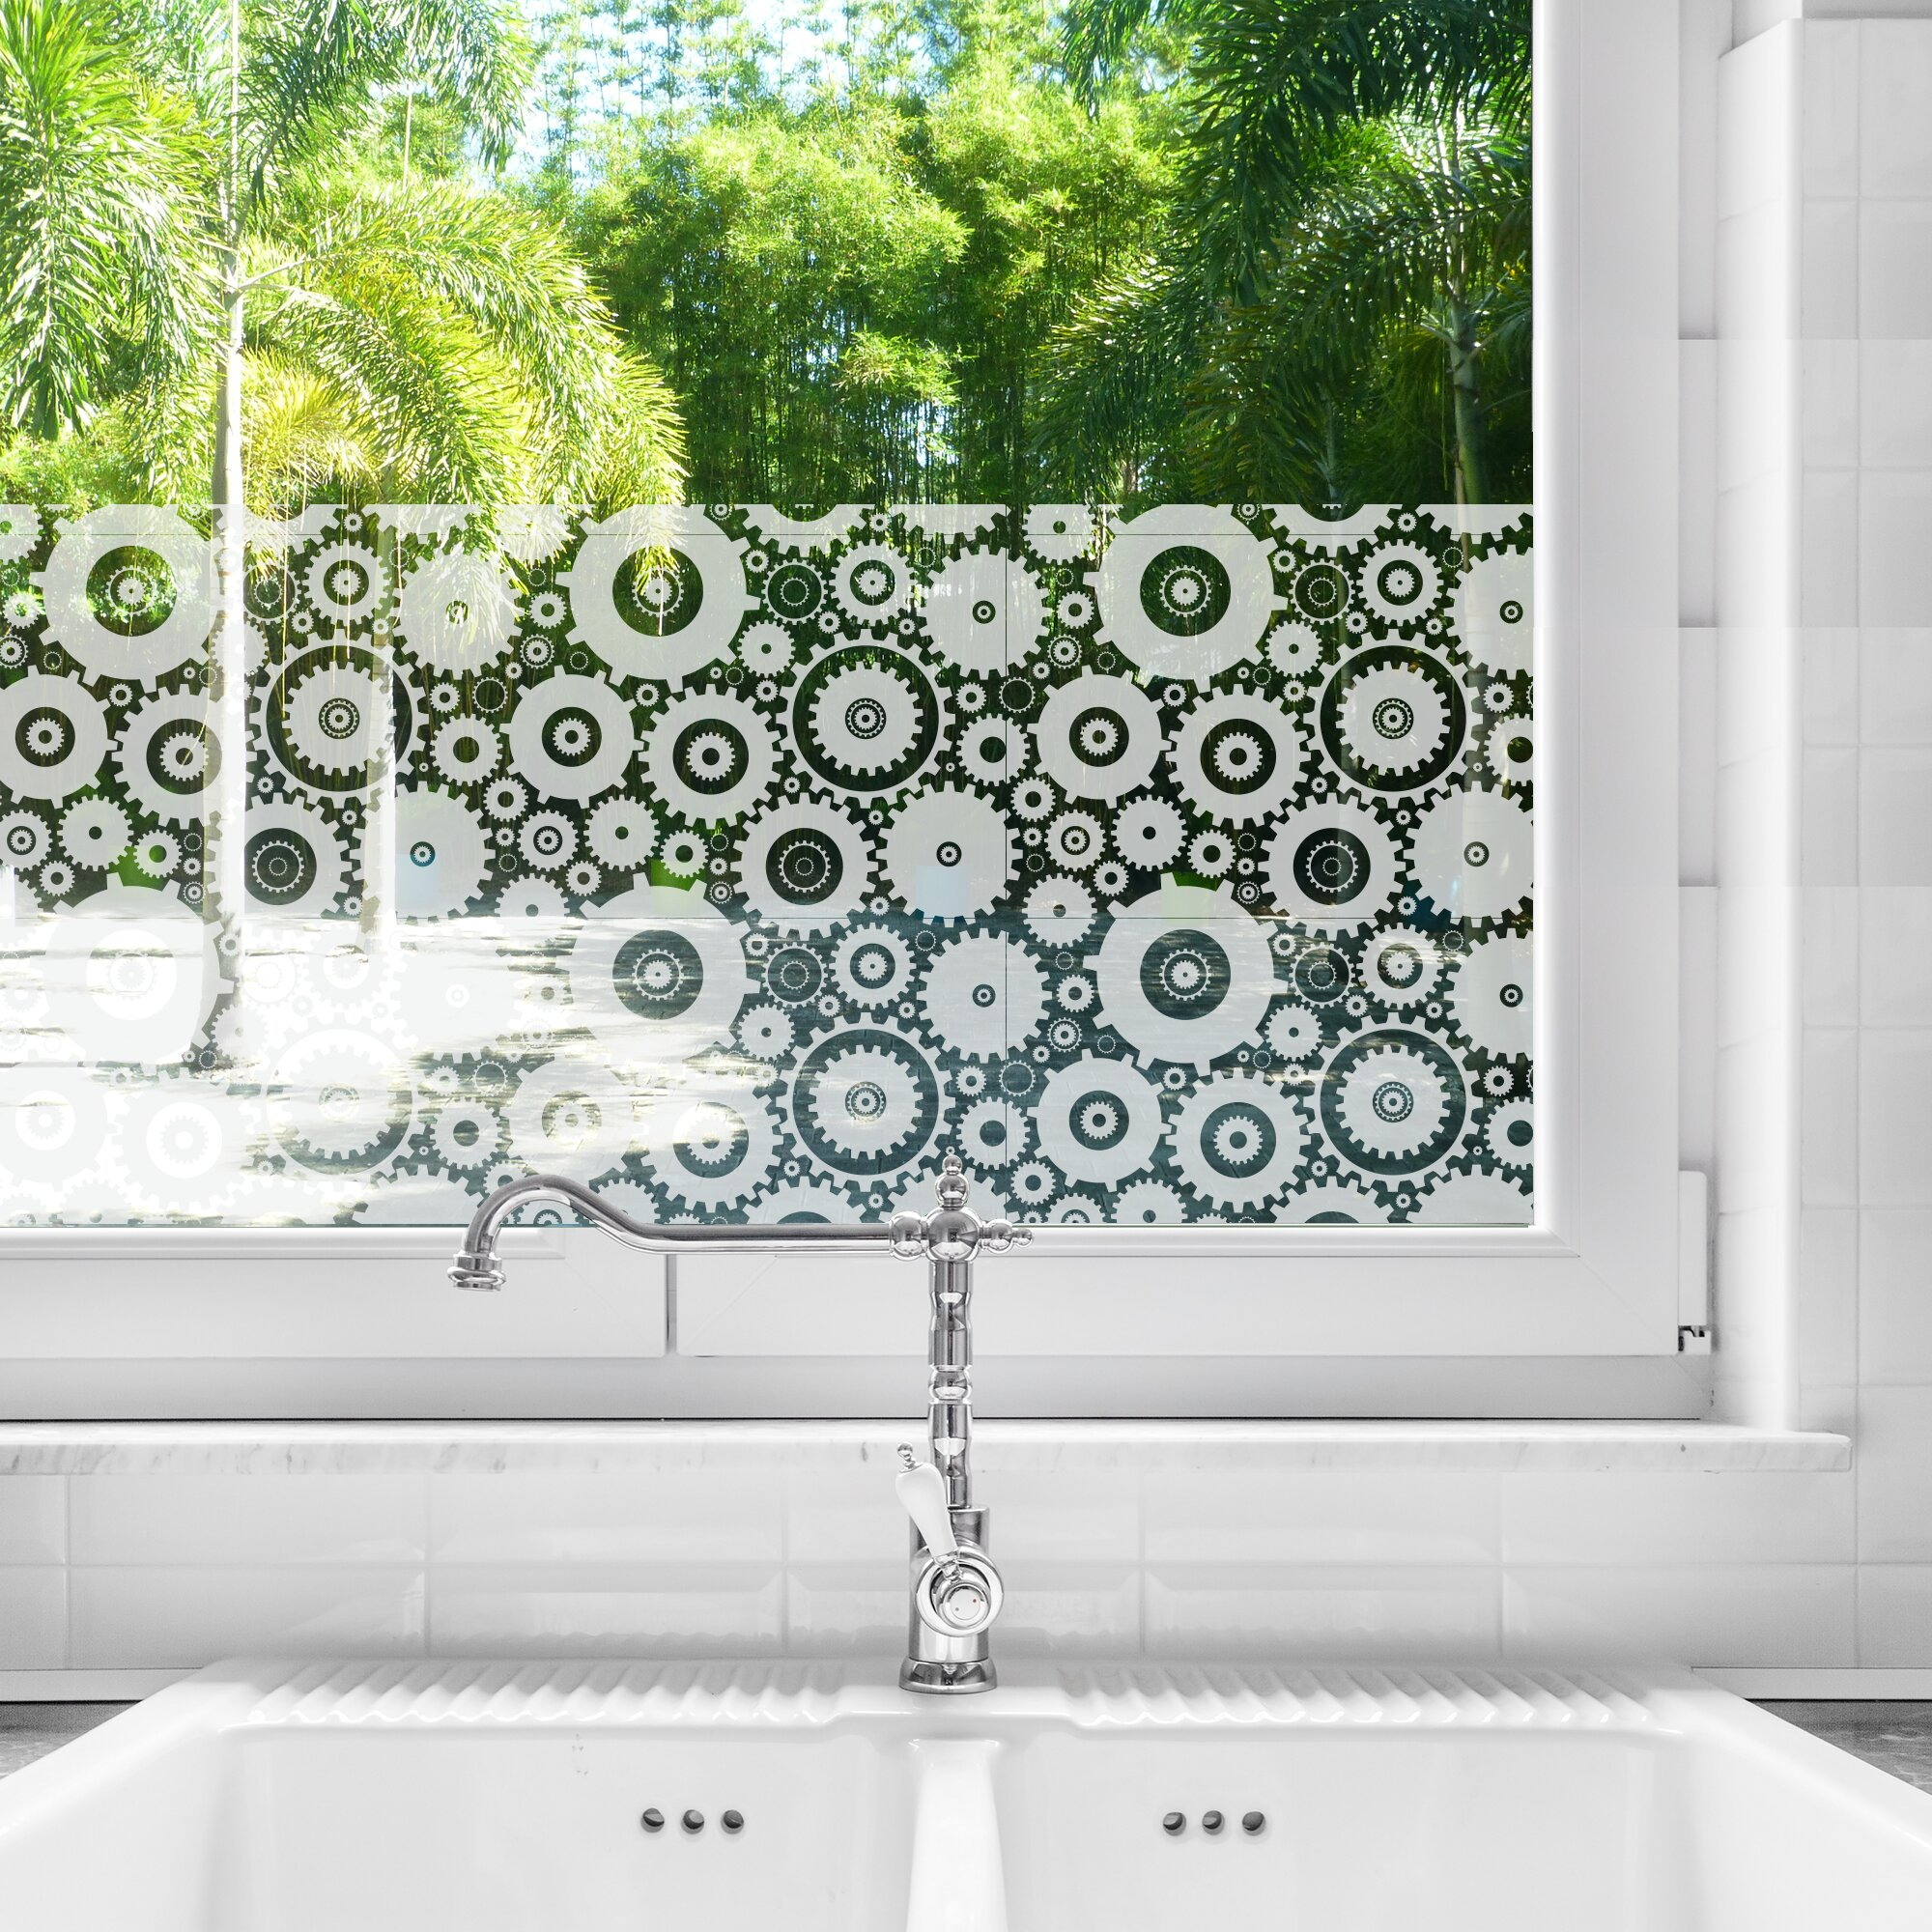 mirrors  etch design 5 set of 4 decorative stickers for window glass